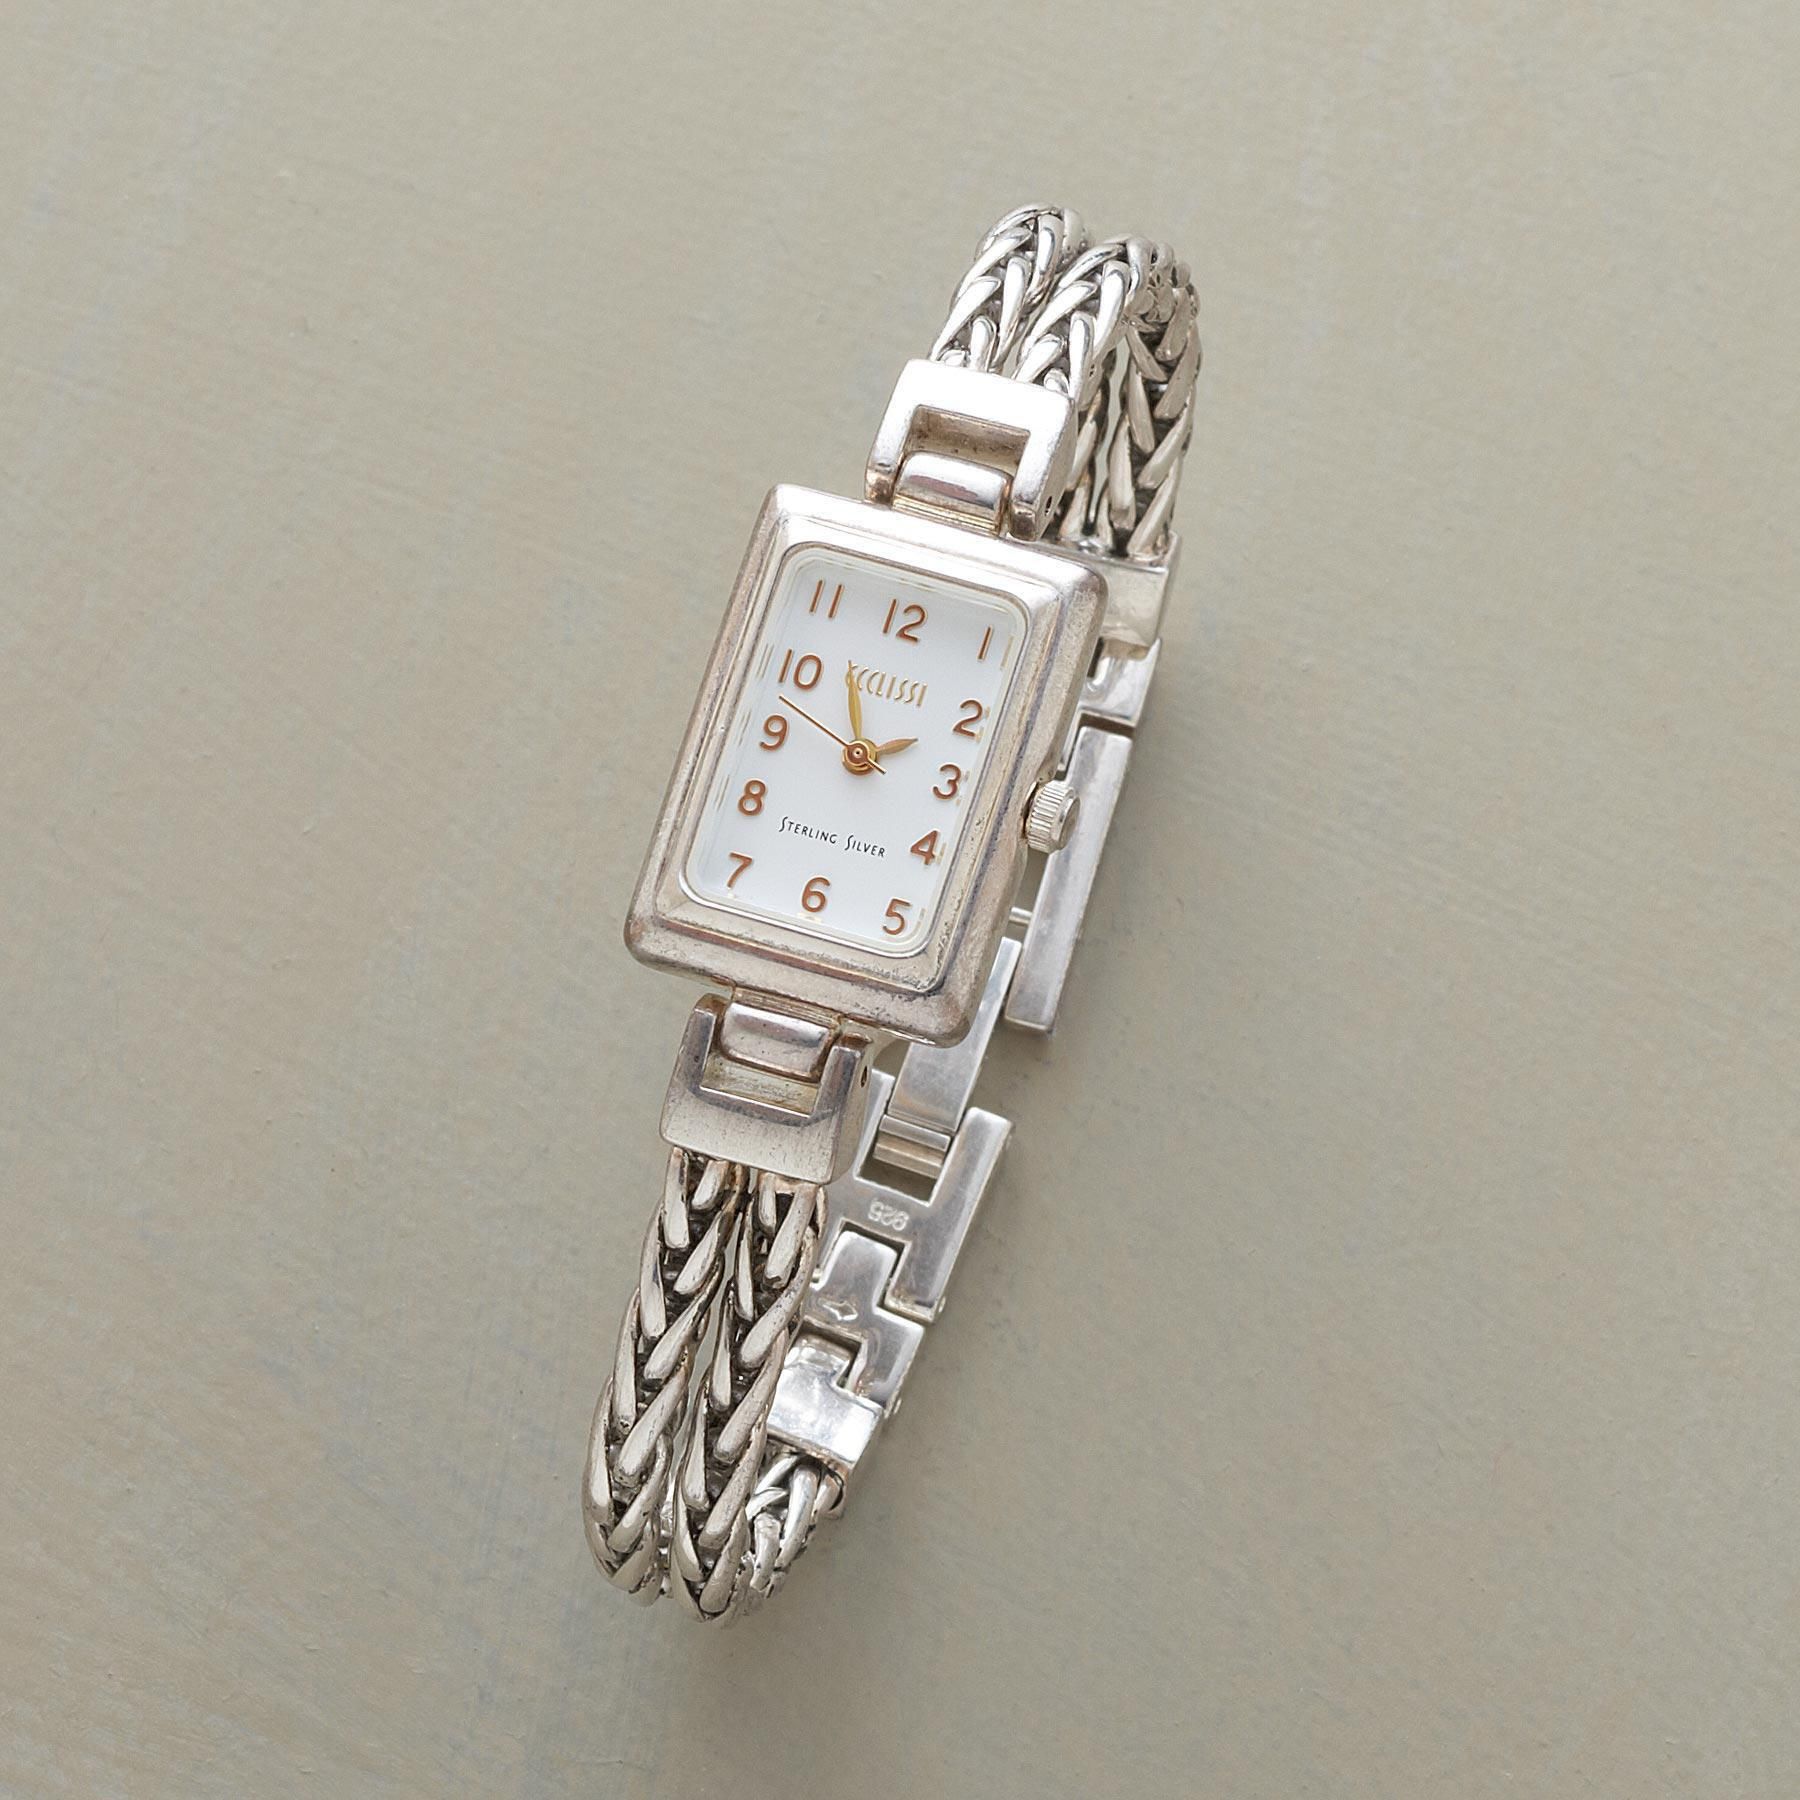 STERLING CHAIN BRACELET WATCH: View 1